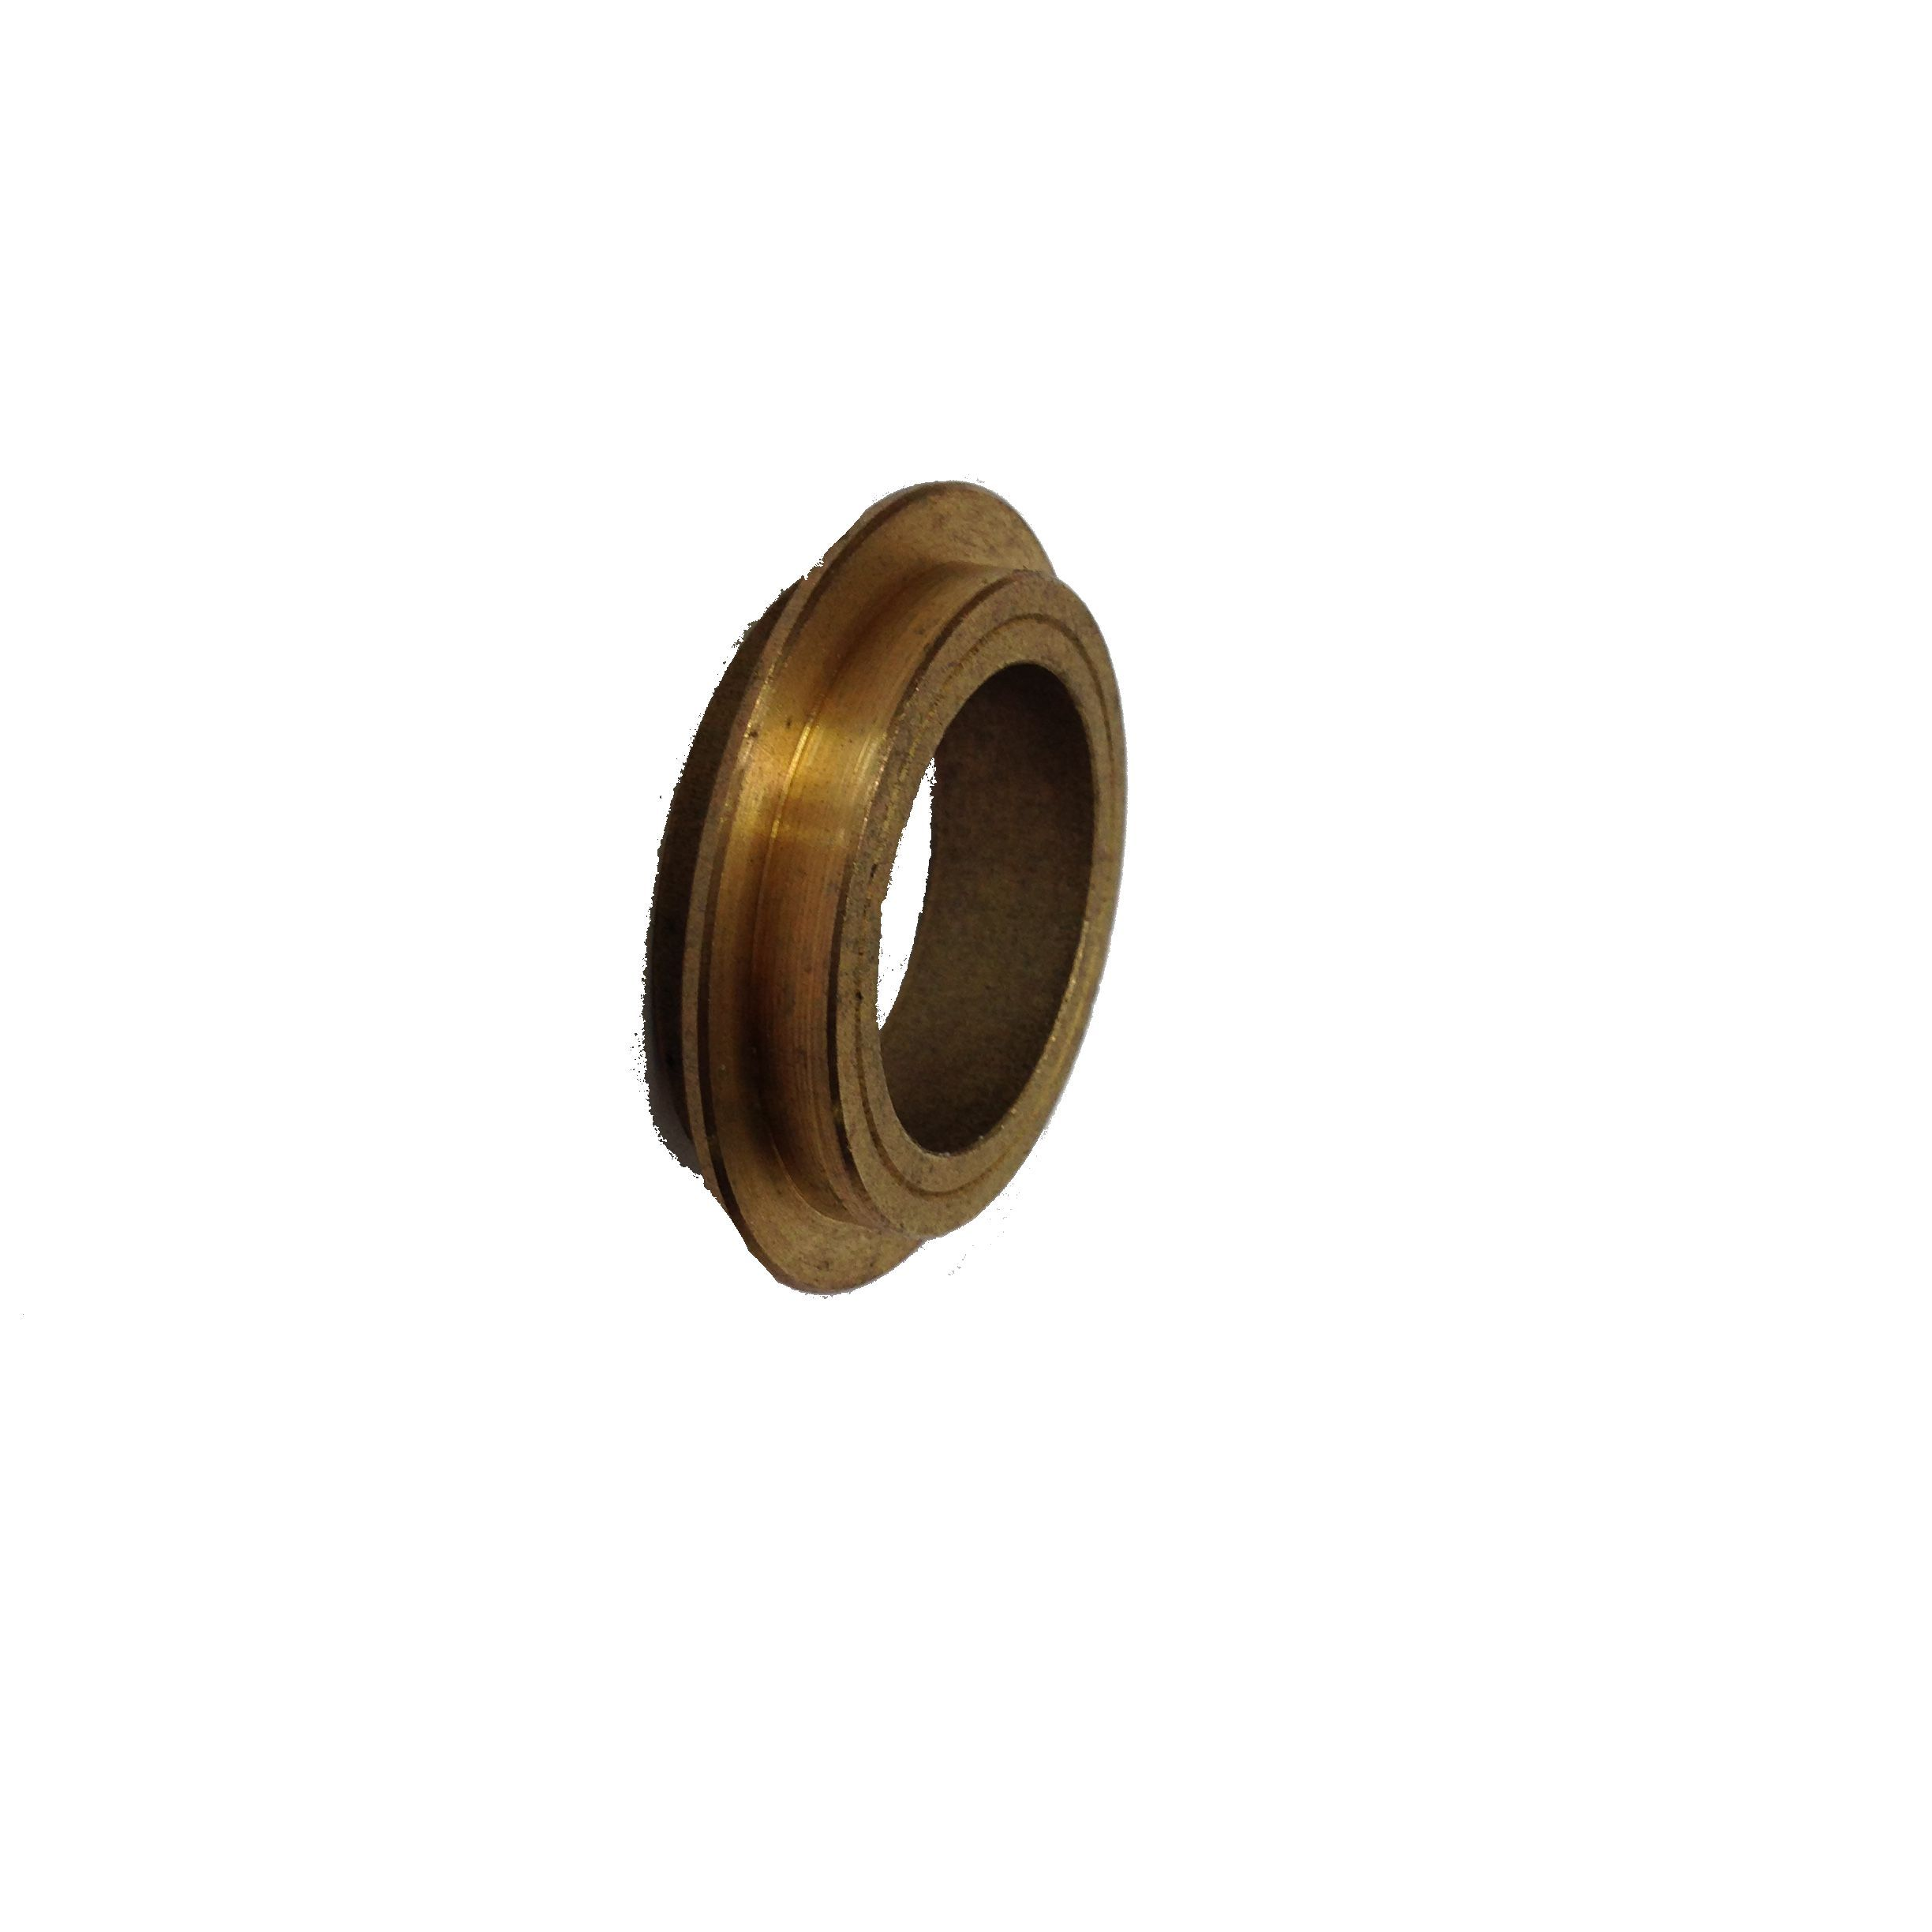 CL22-030 - Drive Clutch Bushing